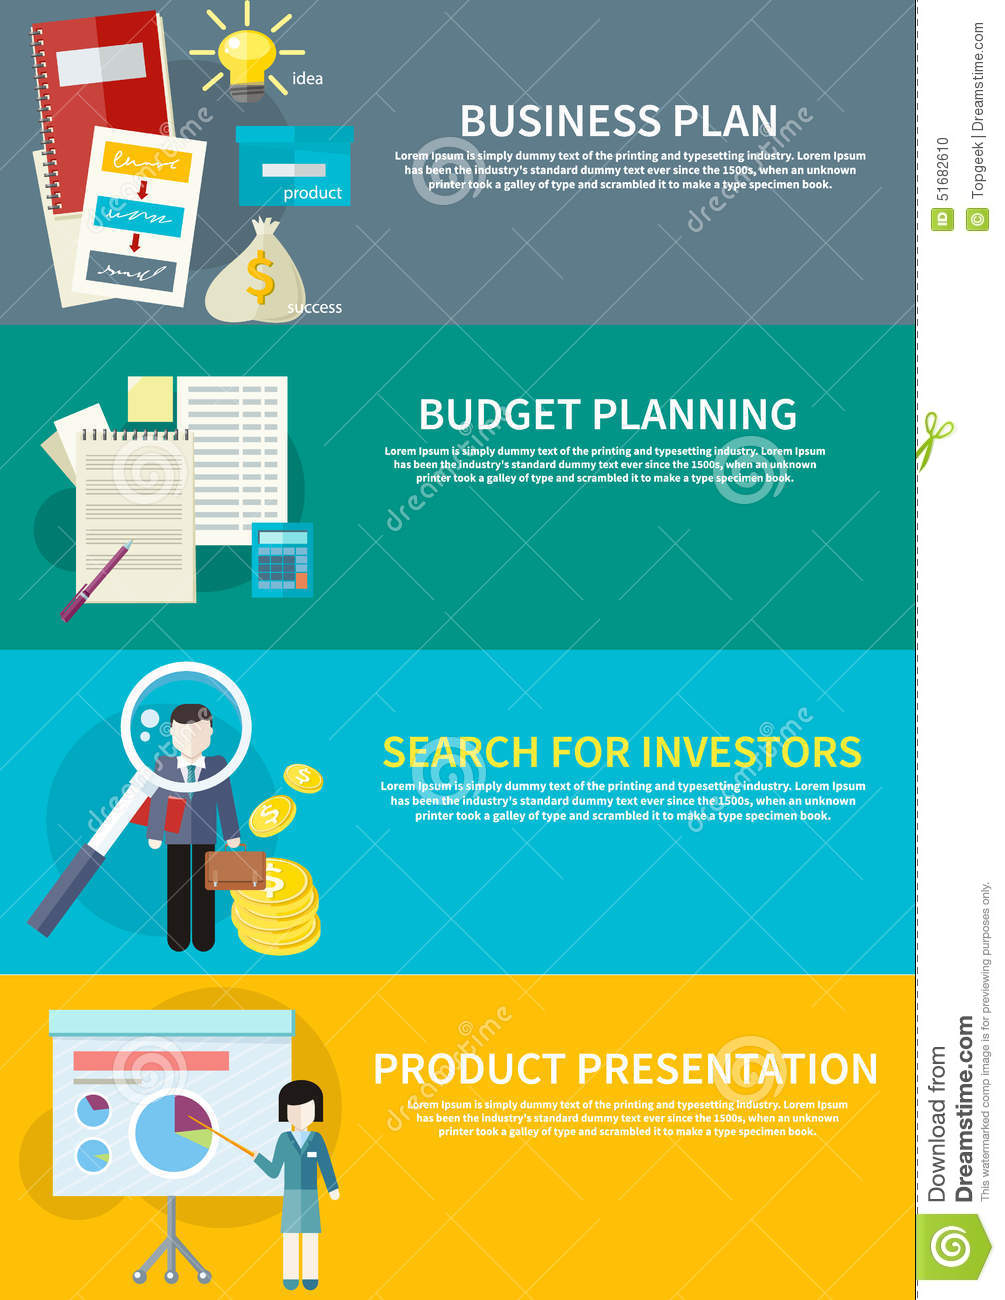 business plan budget planning search investors stock vector